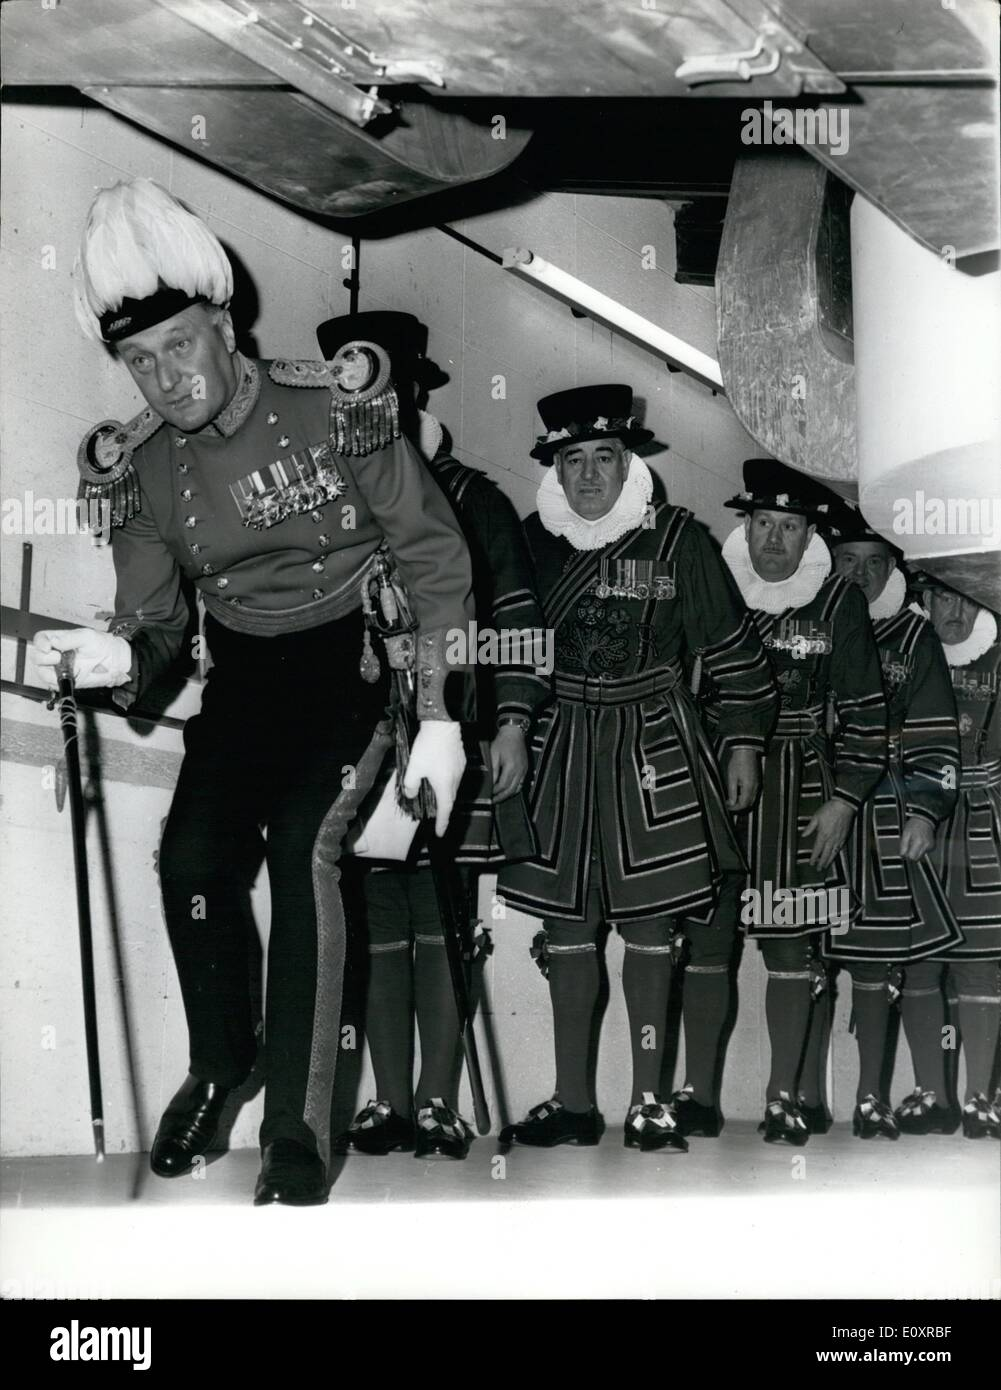 Oct. 10, 1967 - State Opening of Parliament Searching the Vaults.: Colonel J.D. Hornung, officer in charge of the Queen's Bodyguard, ducks under the central heating duets as he leads men of the Queen's Bodyguard in their traditional search of the vaults of the houses of Parliament today, before the State opening Houses of Parliament today. before the state opening ceremony by H.M. Queen Elizabet II. The search is made to ensure no attempt is being made to blow up Parliament while the Queen is present, - Stock Image